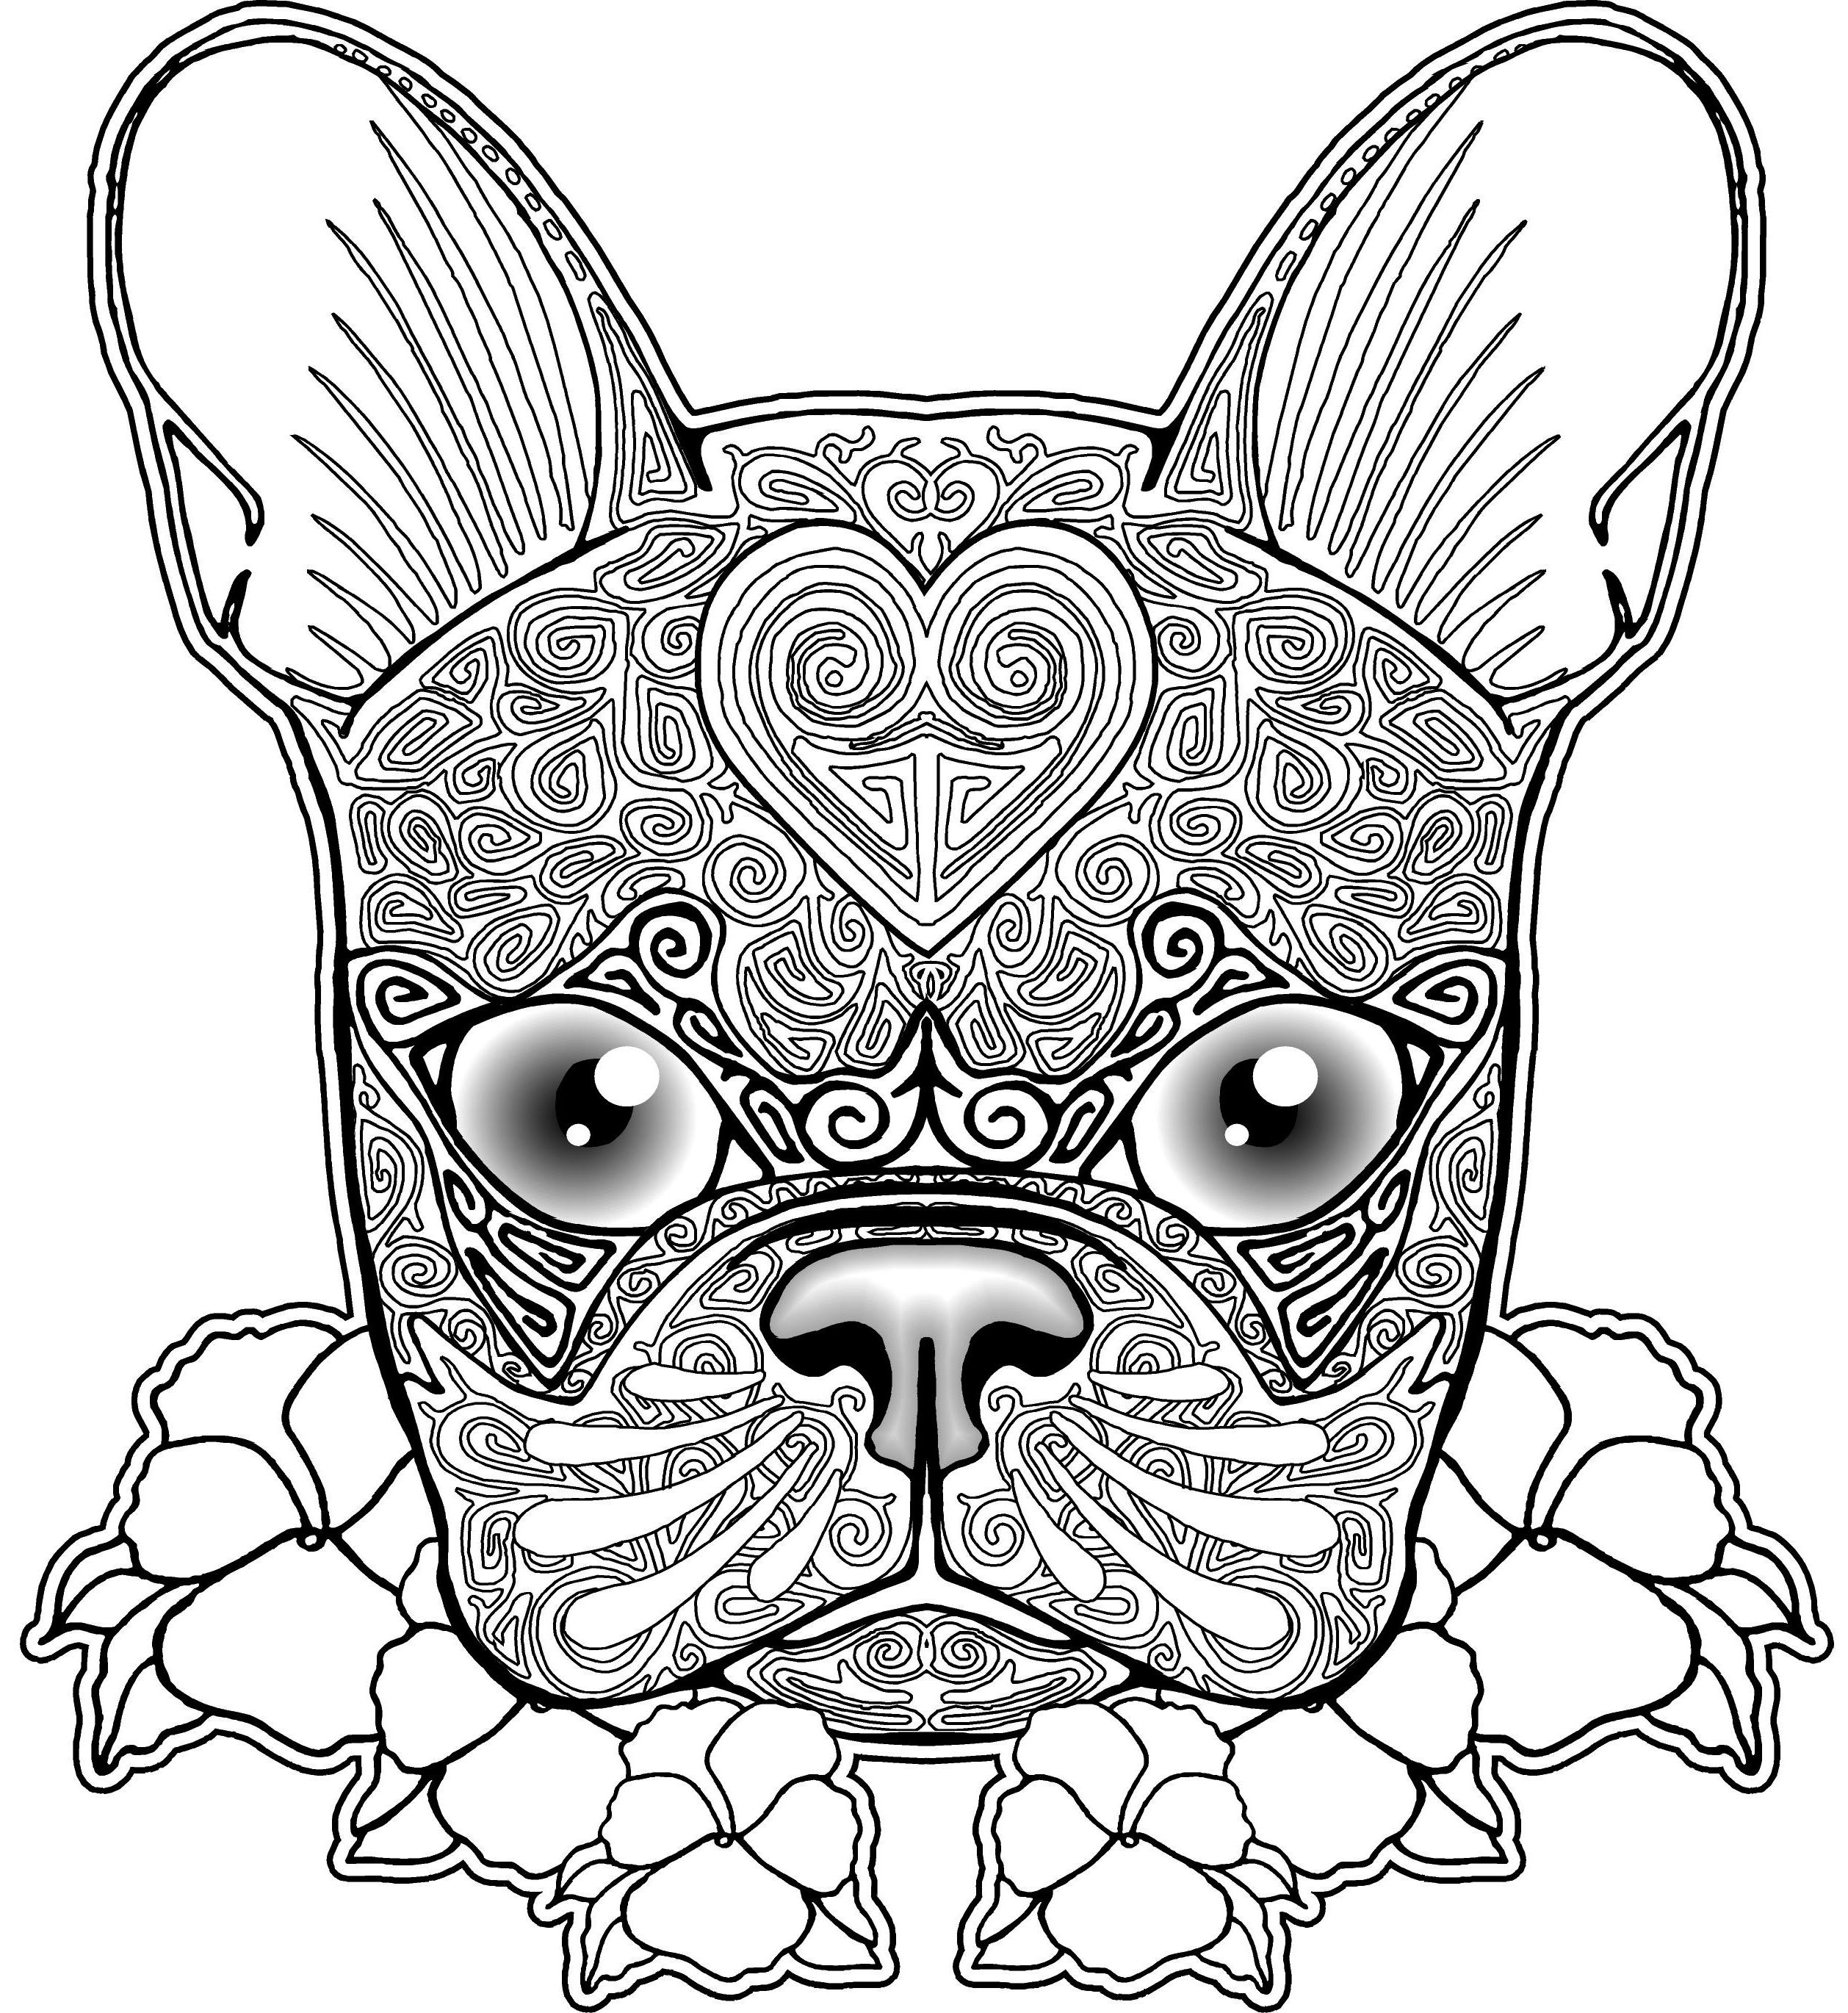 dogs to colour in and print baby dog coloring page free coloring pages online in to colour print and dogs